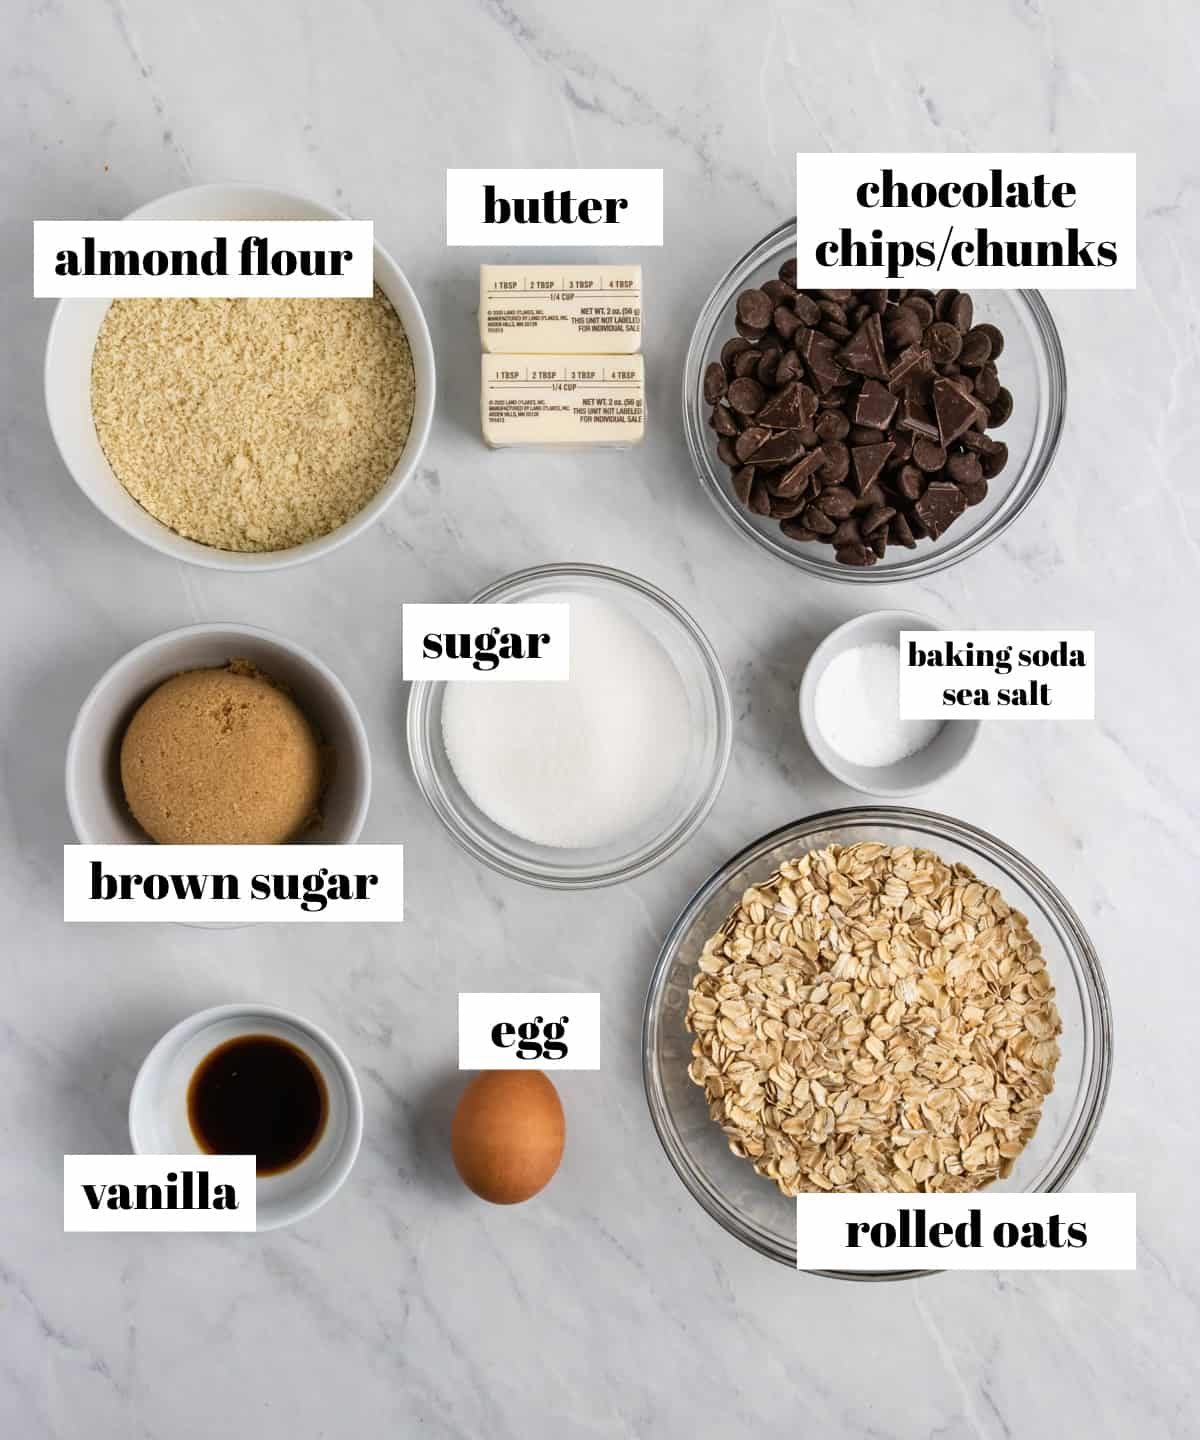 Oats, egg, sugar, butter and other ingredients labeled on counter.